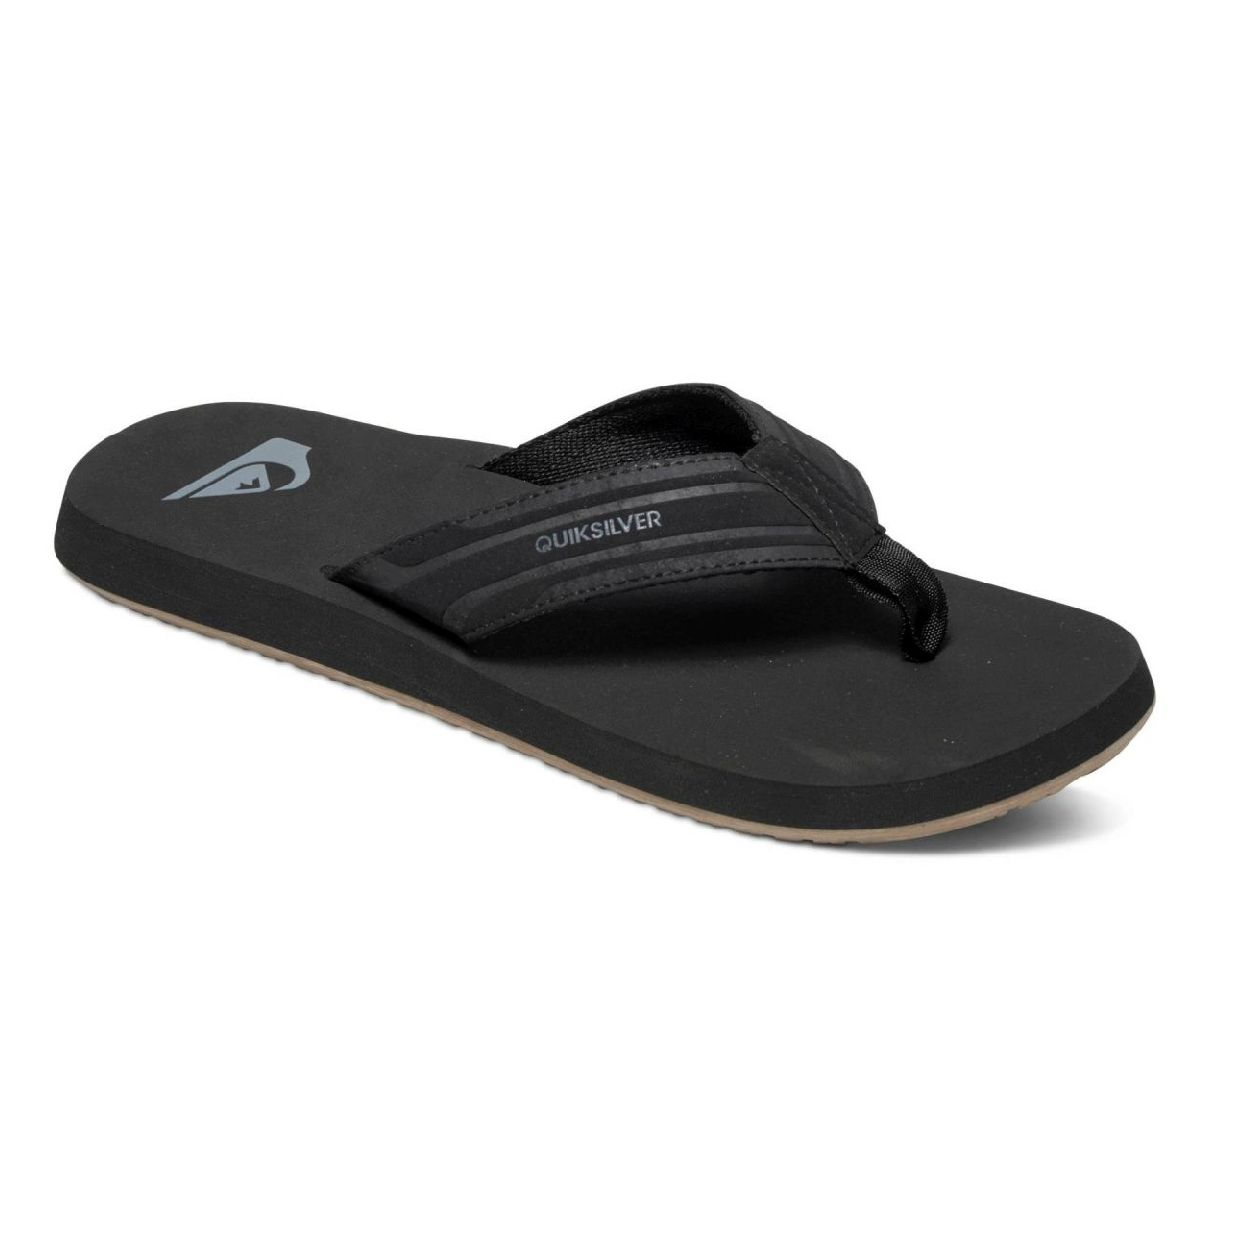 Quiksilver Monkey Wrench Sandalen Zehentrenner Synthetik Herren Schuhe CO